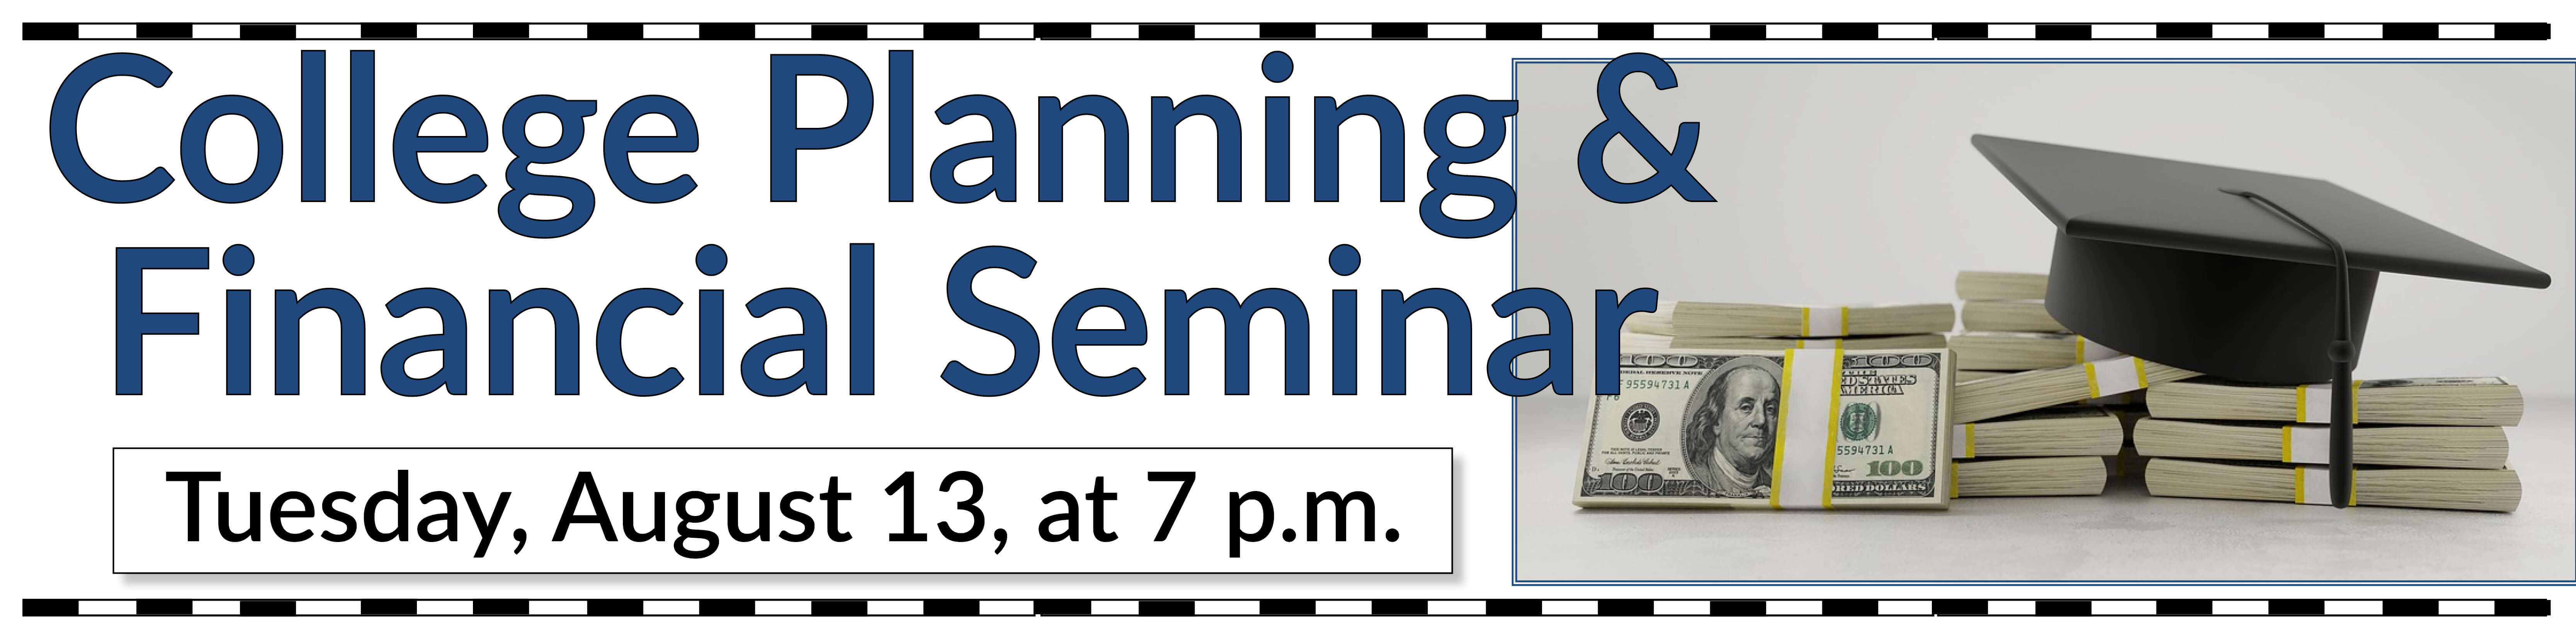 College Planning & Financial Seminar